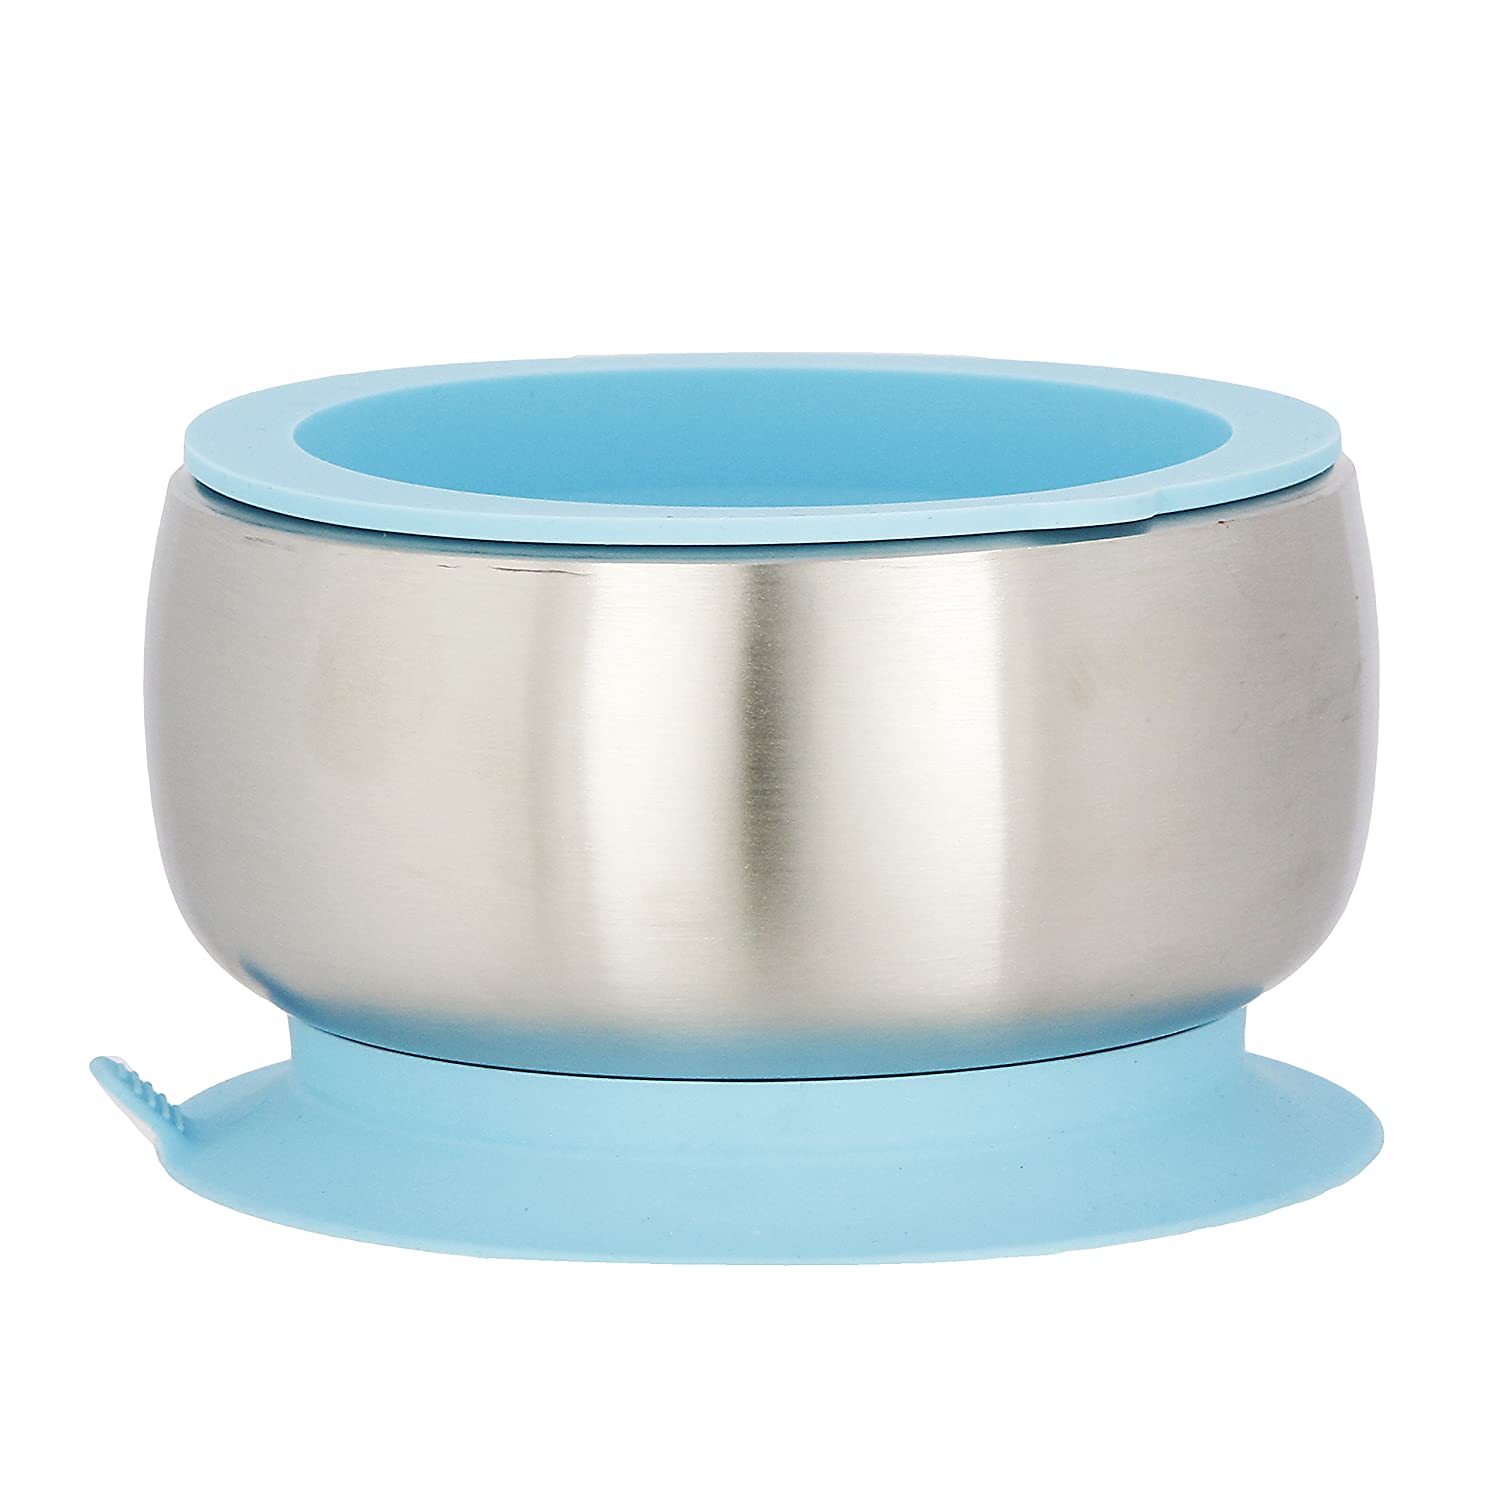 Top 9 Best Baby Bowls and Plates Reviews in 2019 6